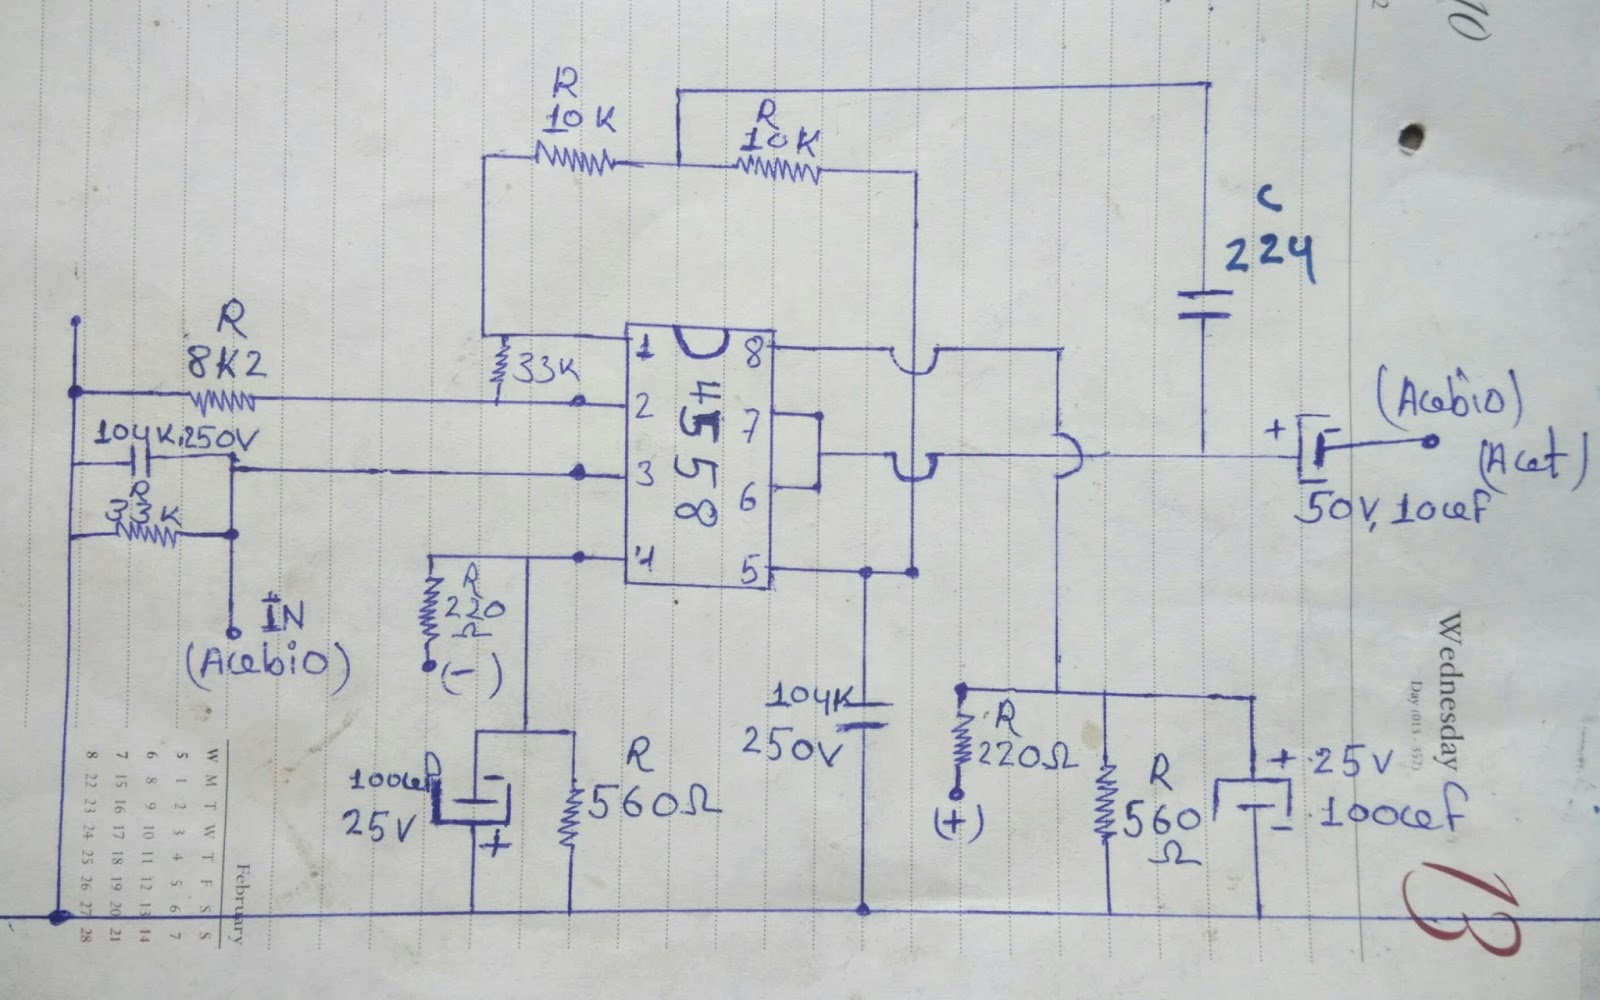 Bass Treble Circuit Diagram 4558 - Case 430 Ck Wiring Diagram -  gsxr750.yenpancane.jeanjaures37.fr | Bass Treble Circuit Diagram 4558 |  | Wiring Diagram Resource